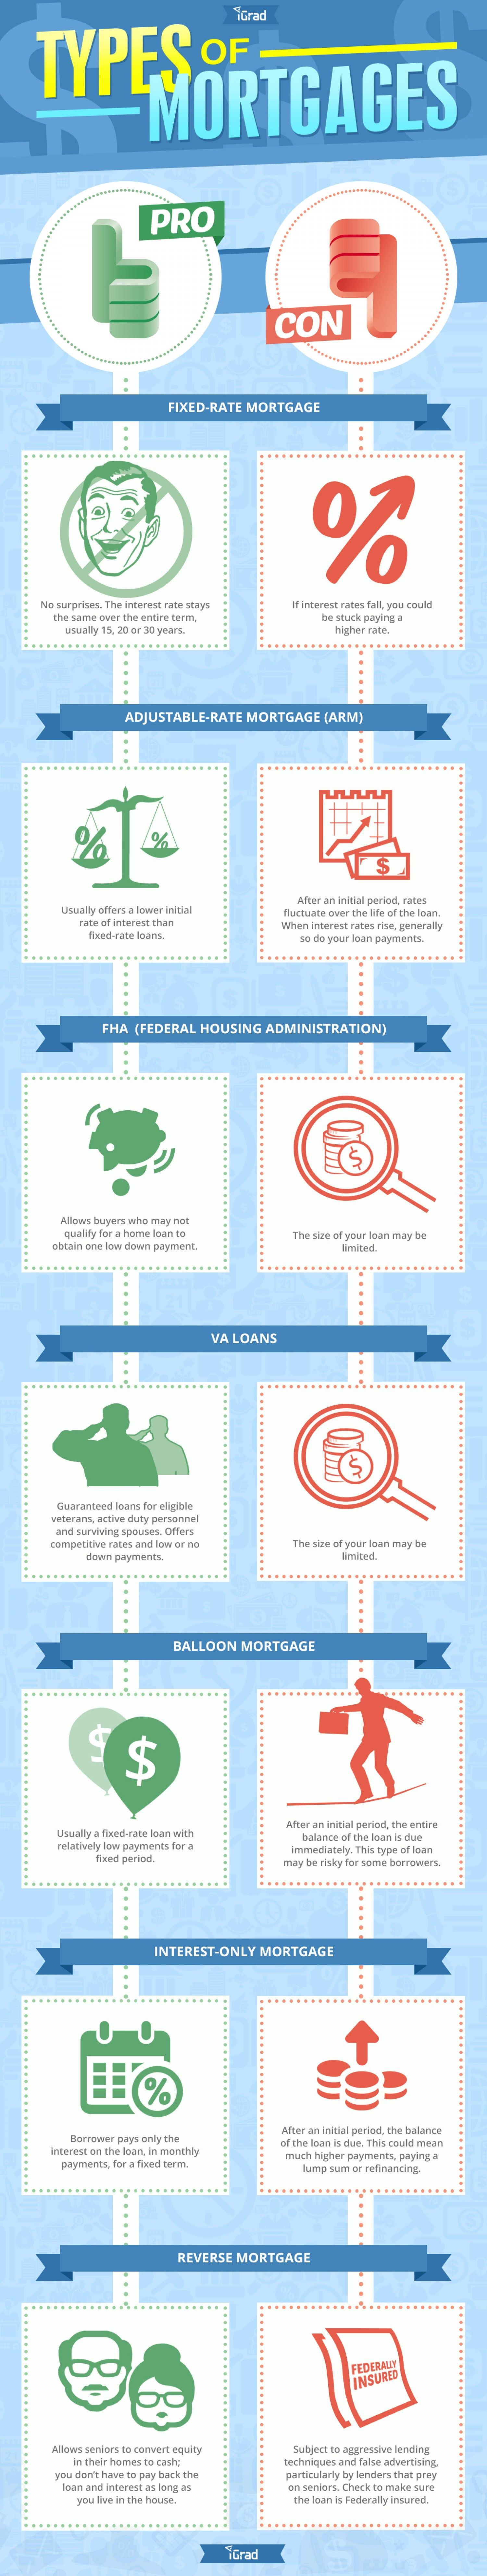 Pros And Cons Of Mortgage Types Trending Home News Refinance Mortgage Refinancing Mortgage Mortgage Infographic